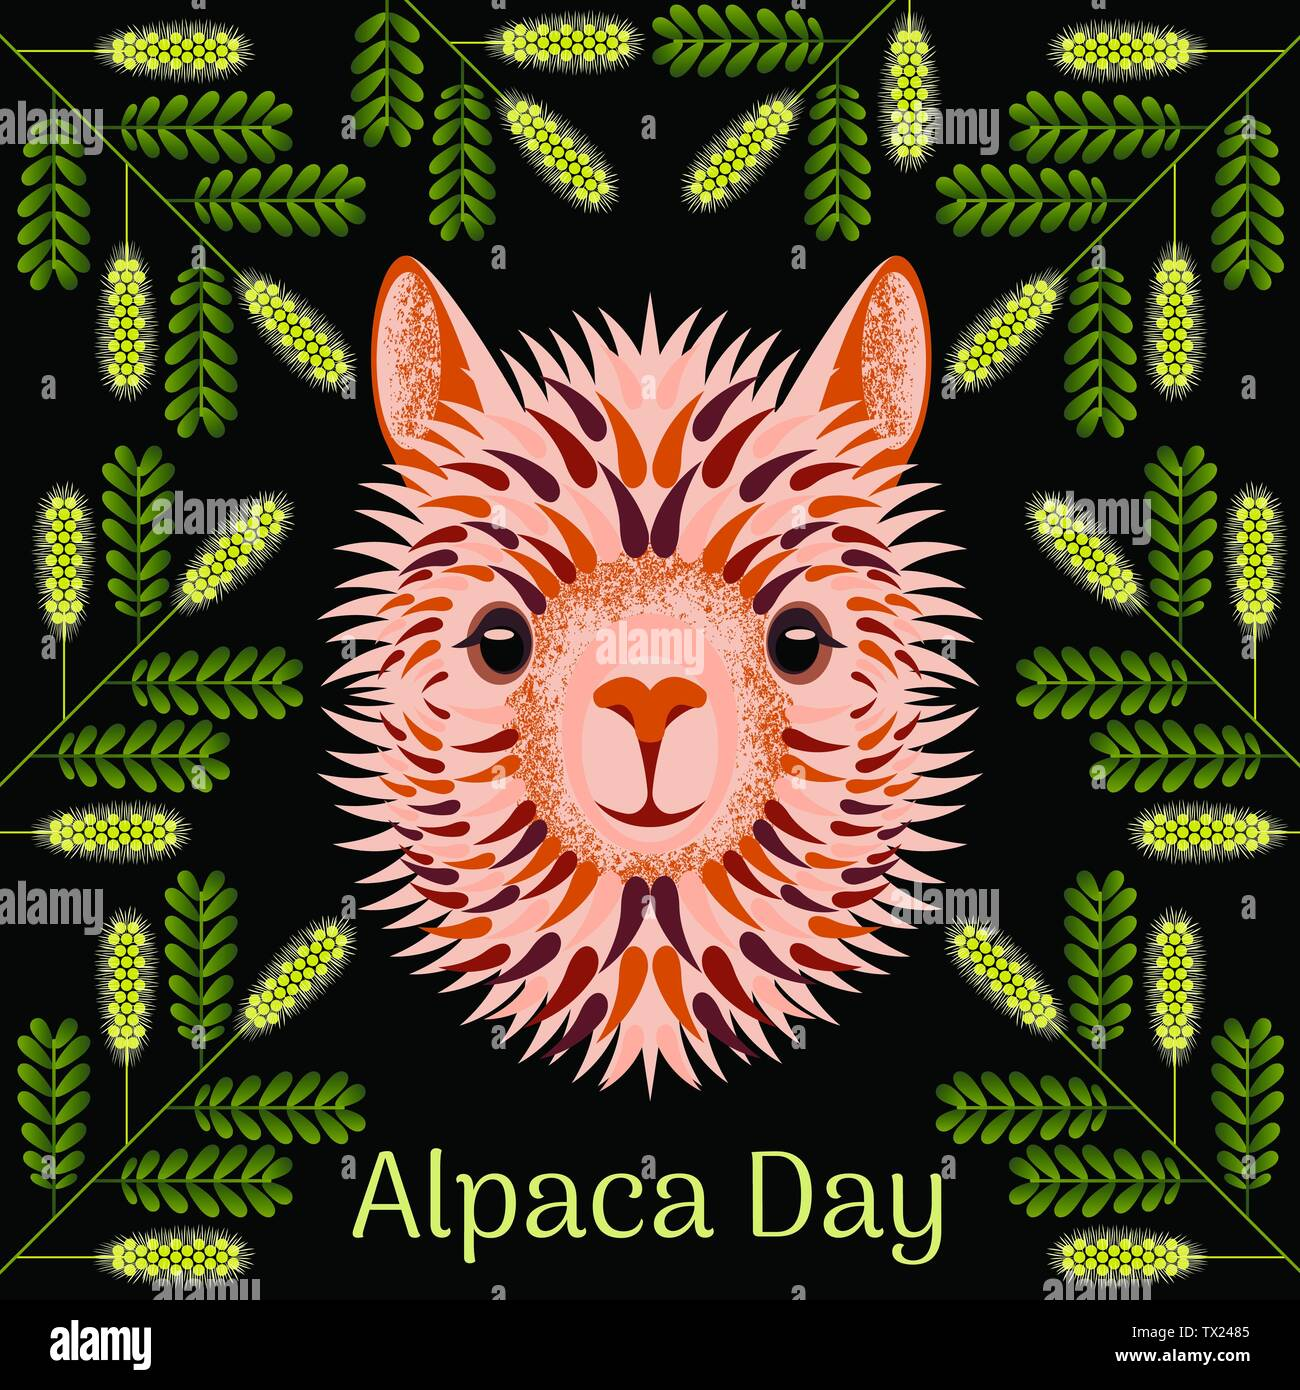 Alpaca Day. National holiday in Peru. Blonde Head, face, alpaca portrait. Mesquite twig frame - Stock Vector